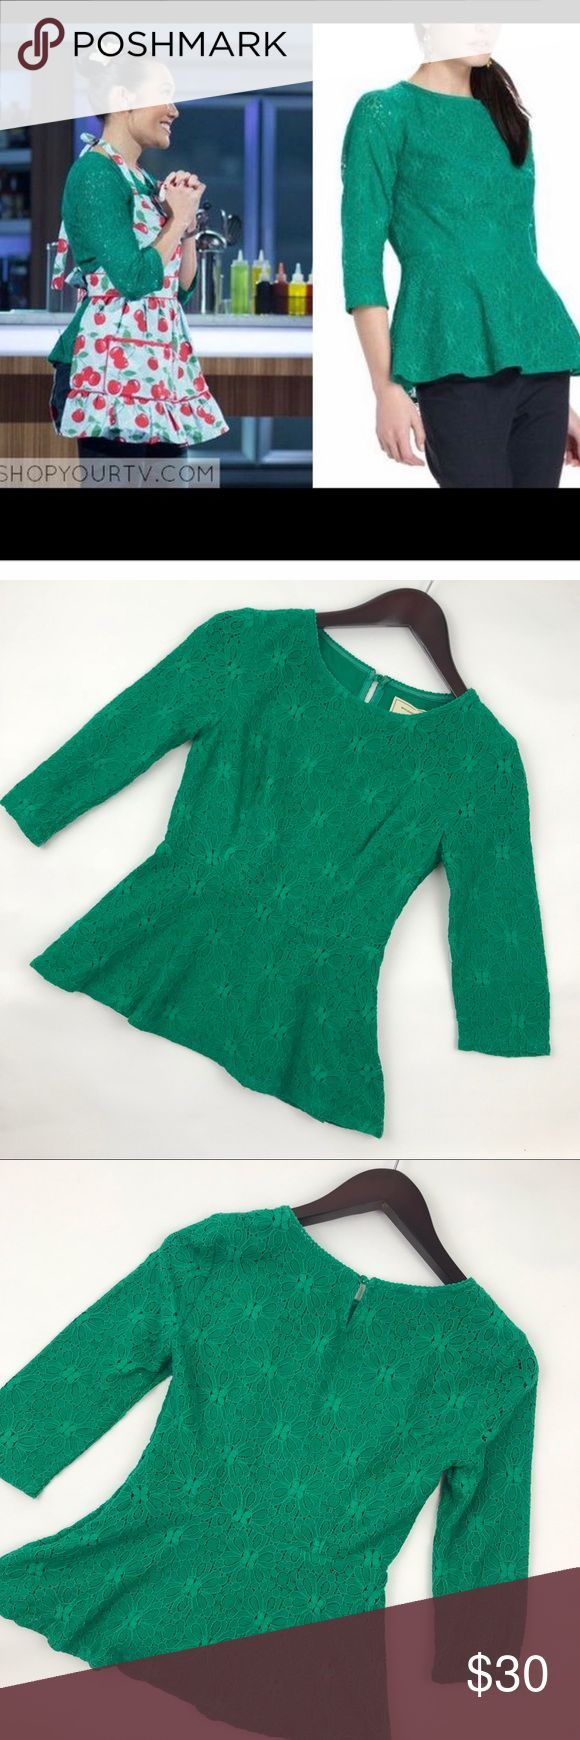 Anthropology Moulinette Sisters green lace top Gorgeous Anthropologie Moulinette …